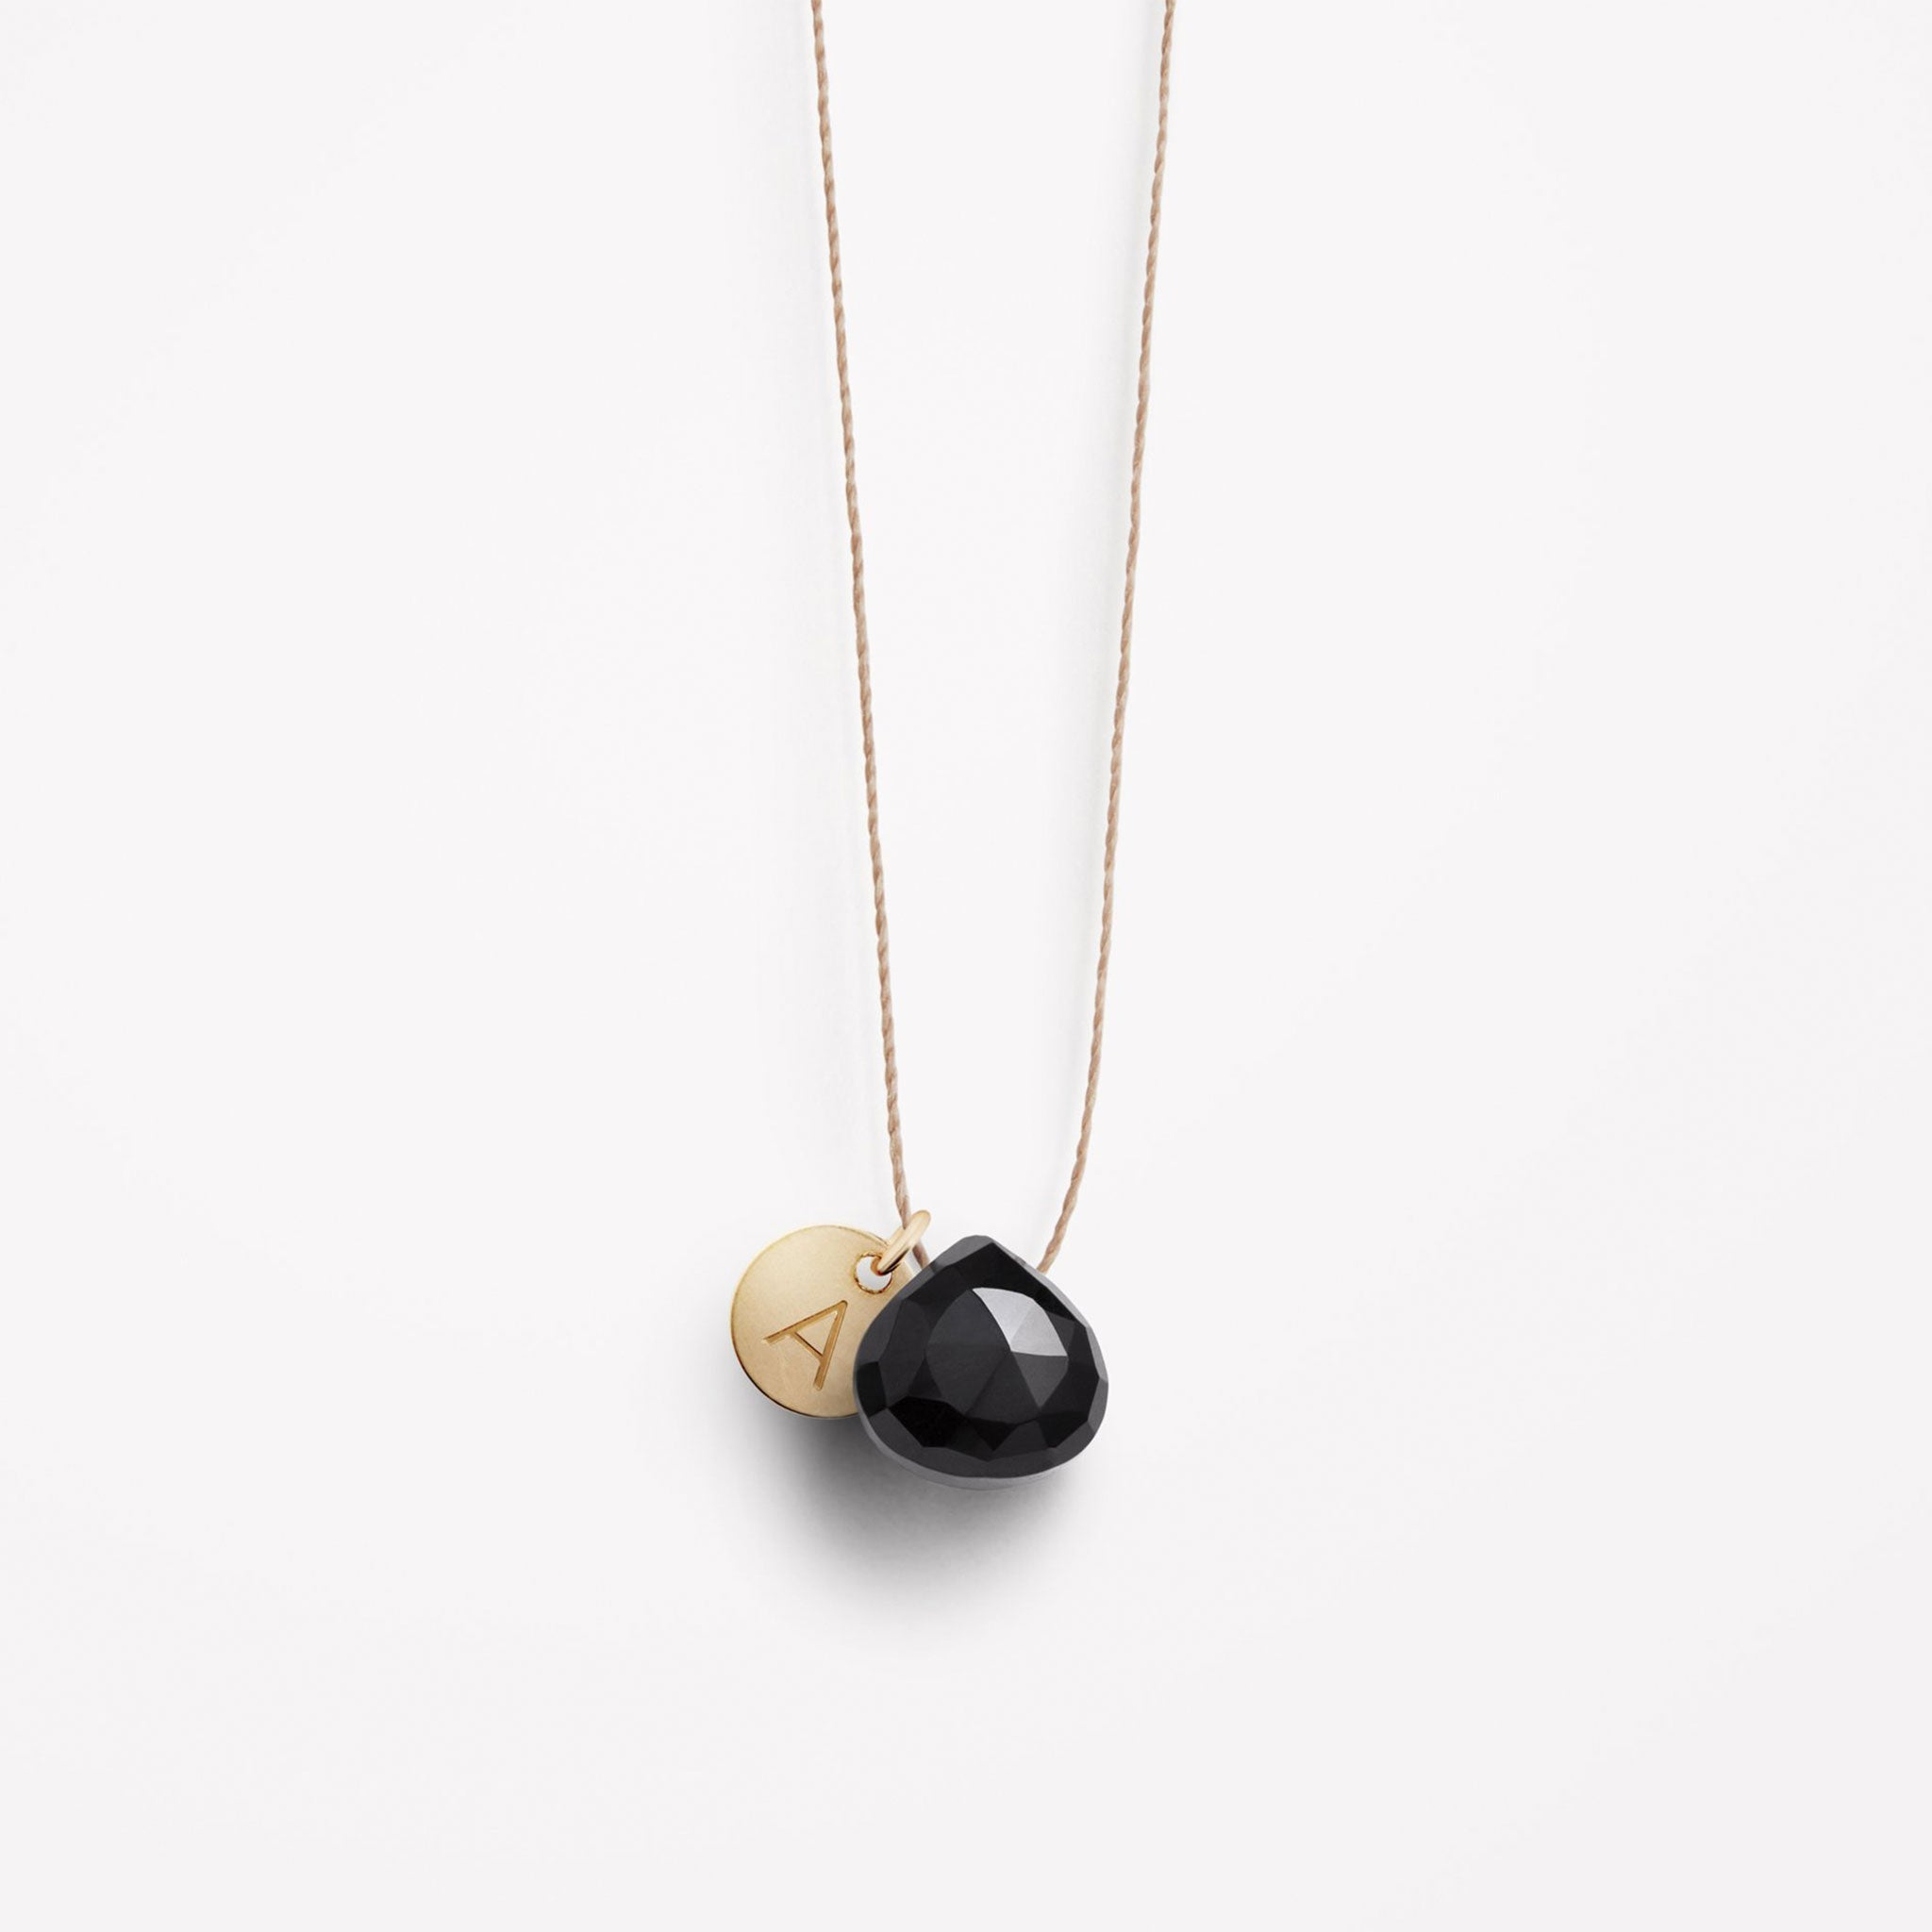 Wanderlust Life Ethically Handmade jewellery made in the UK. Minimalist gold and fine cord jewellery. Personalised Black Spinel gemstone fine cord necklace with gold personalised tag.